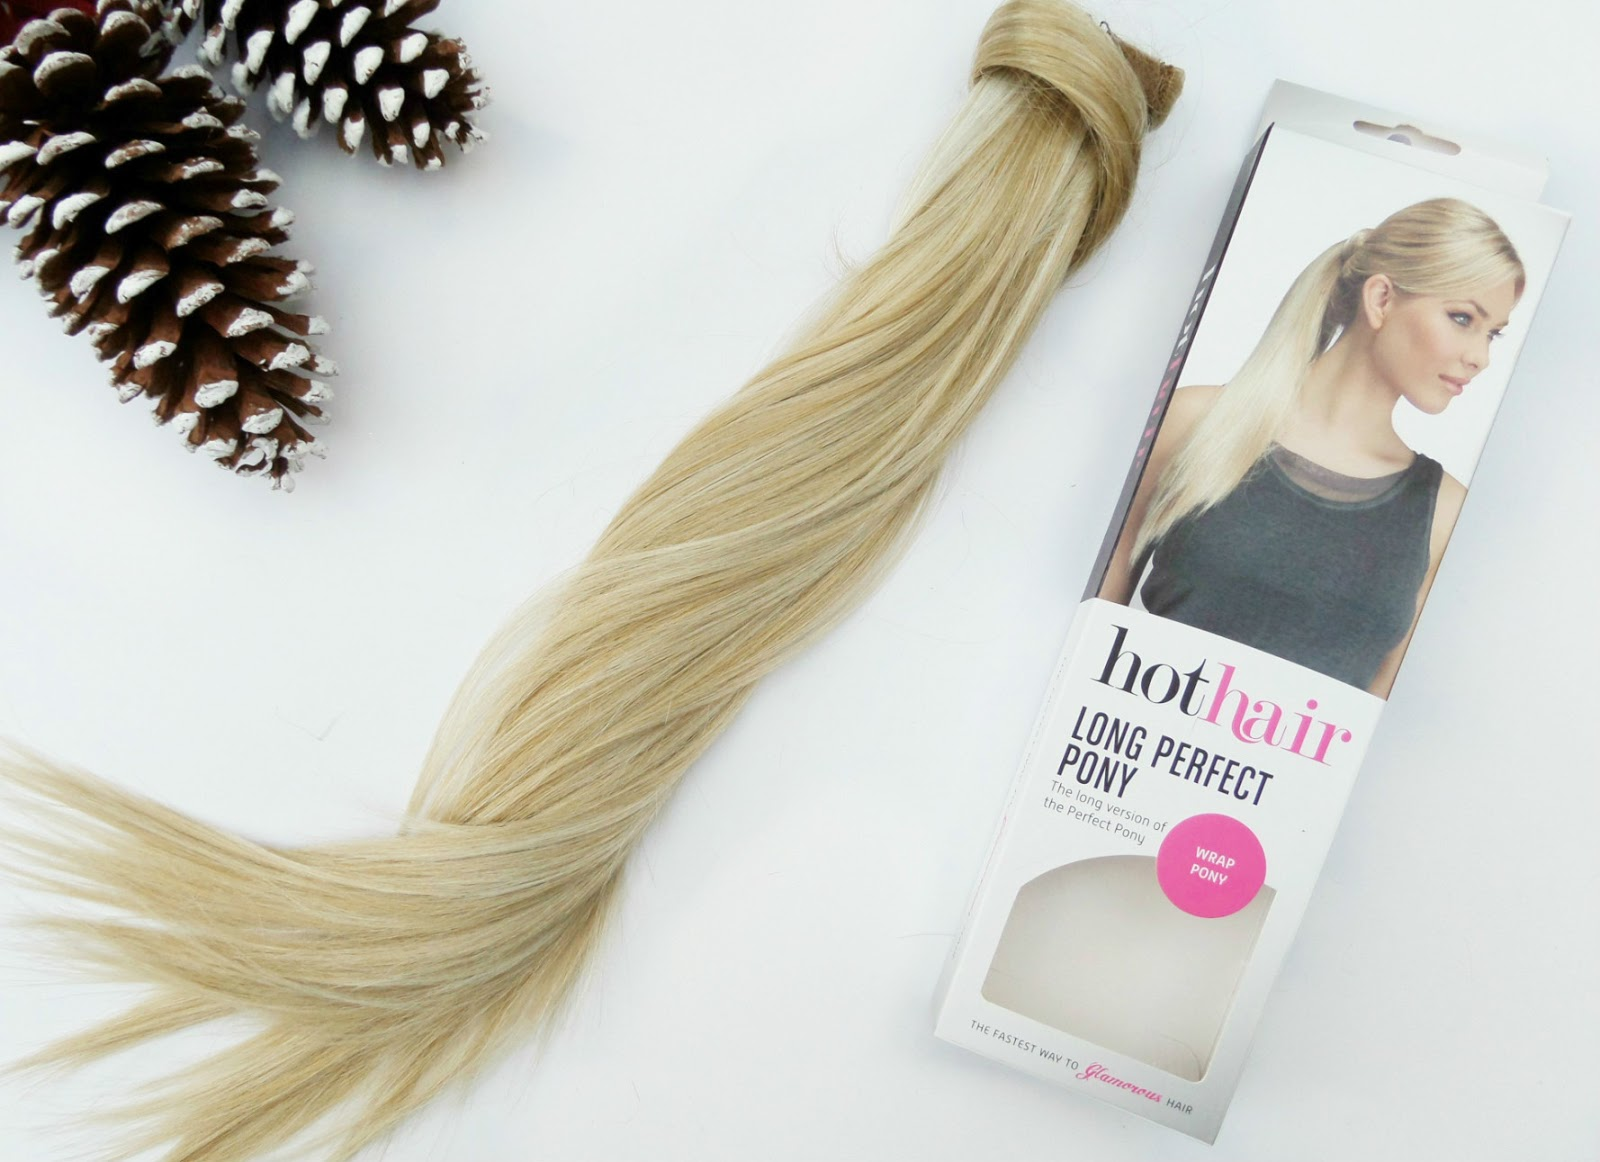 The Hot Hair Long Perfect Pony Review